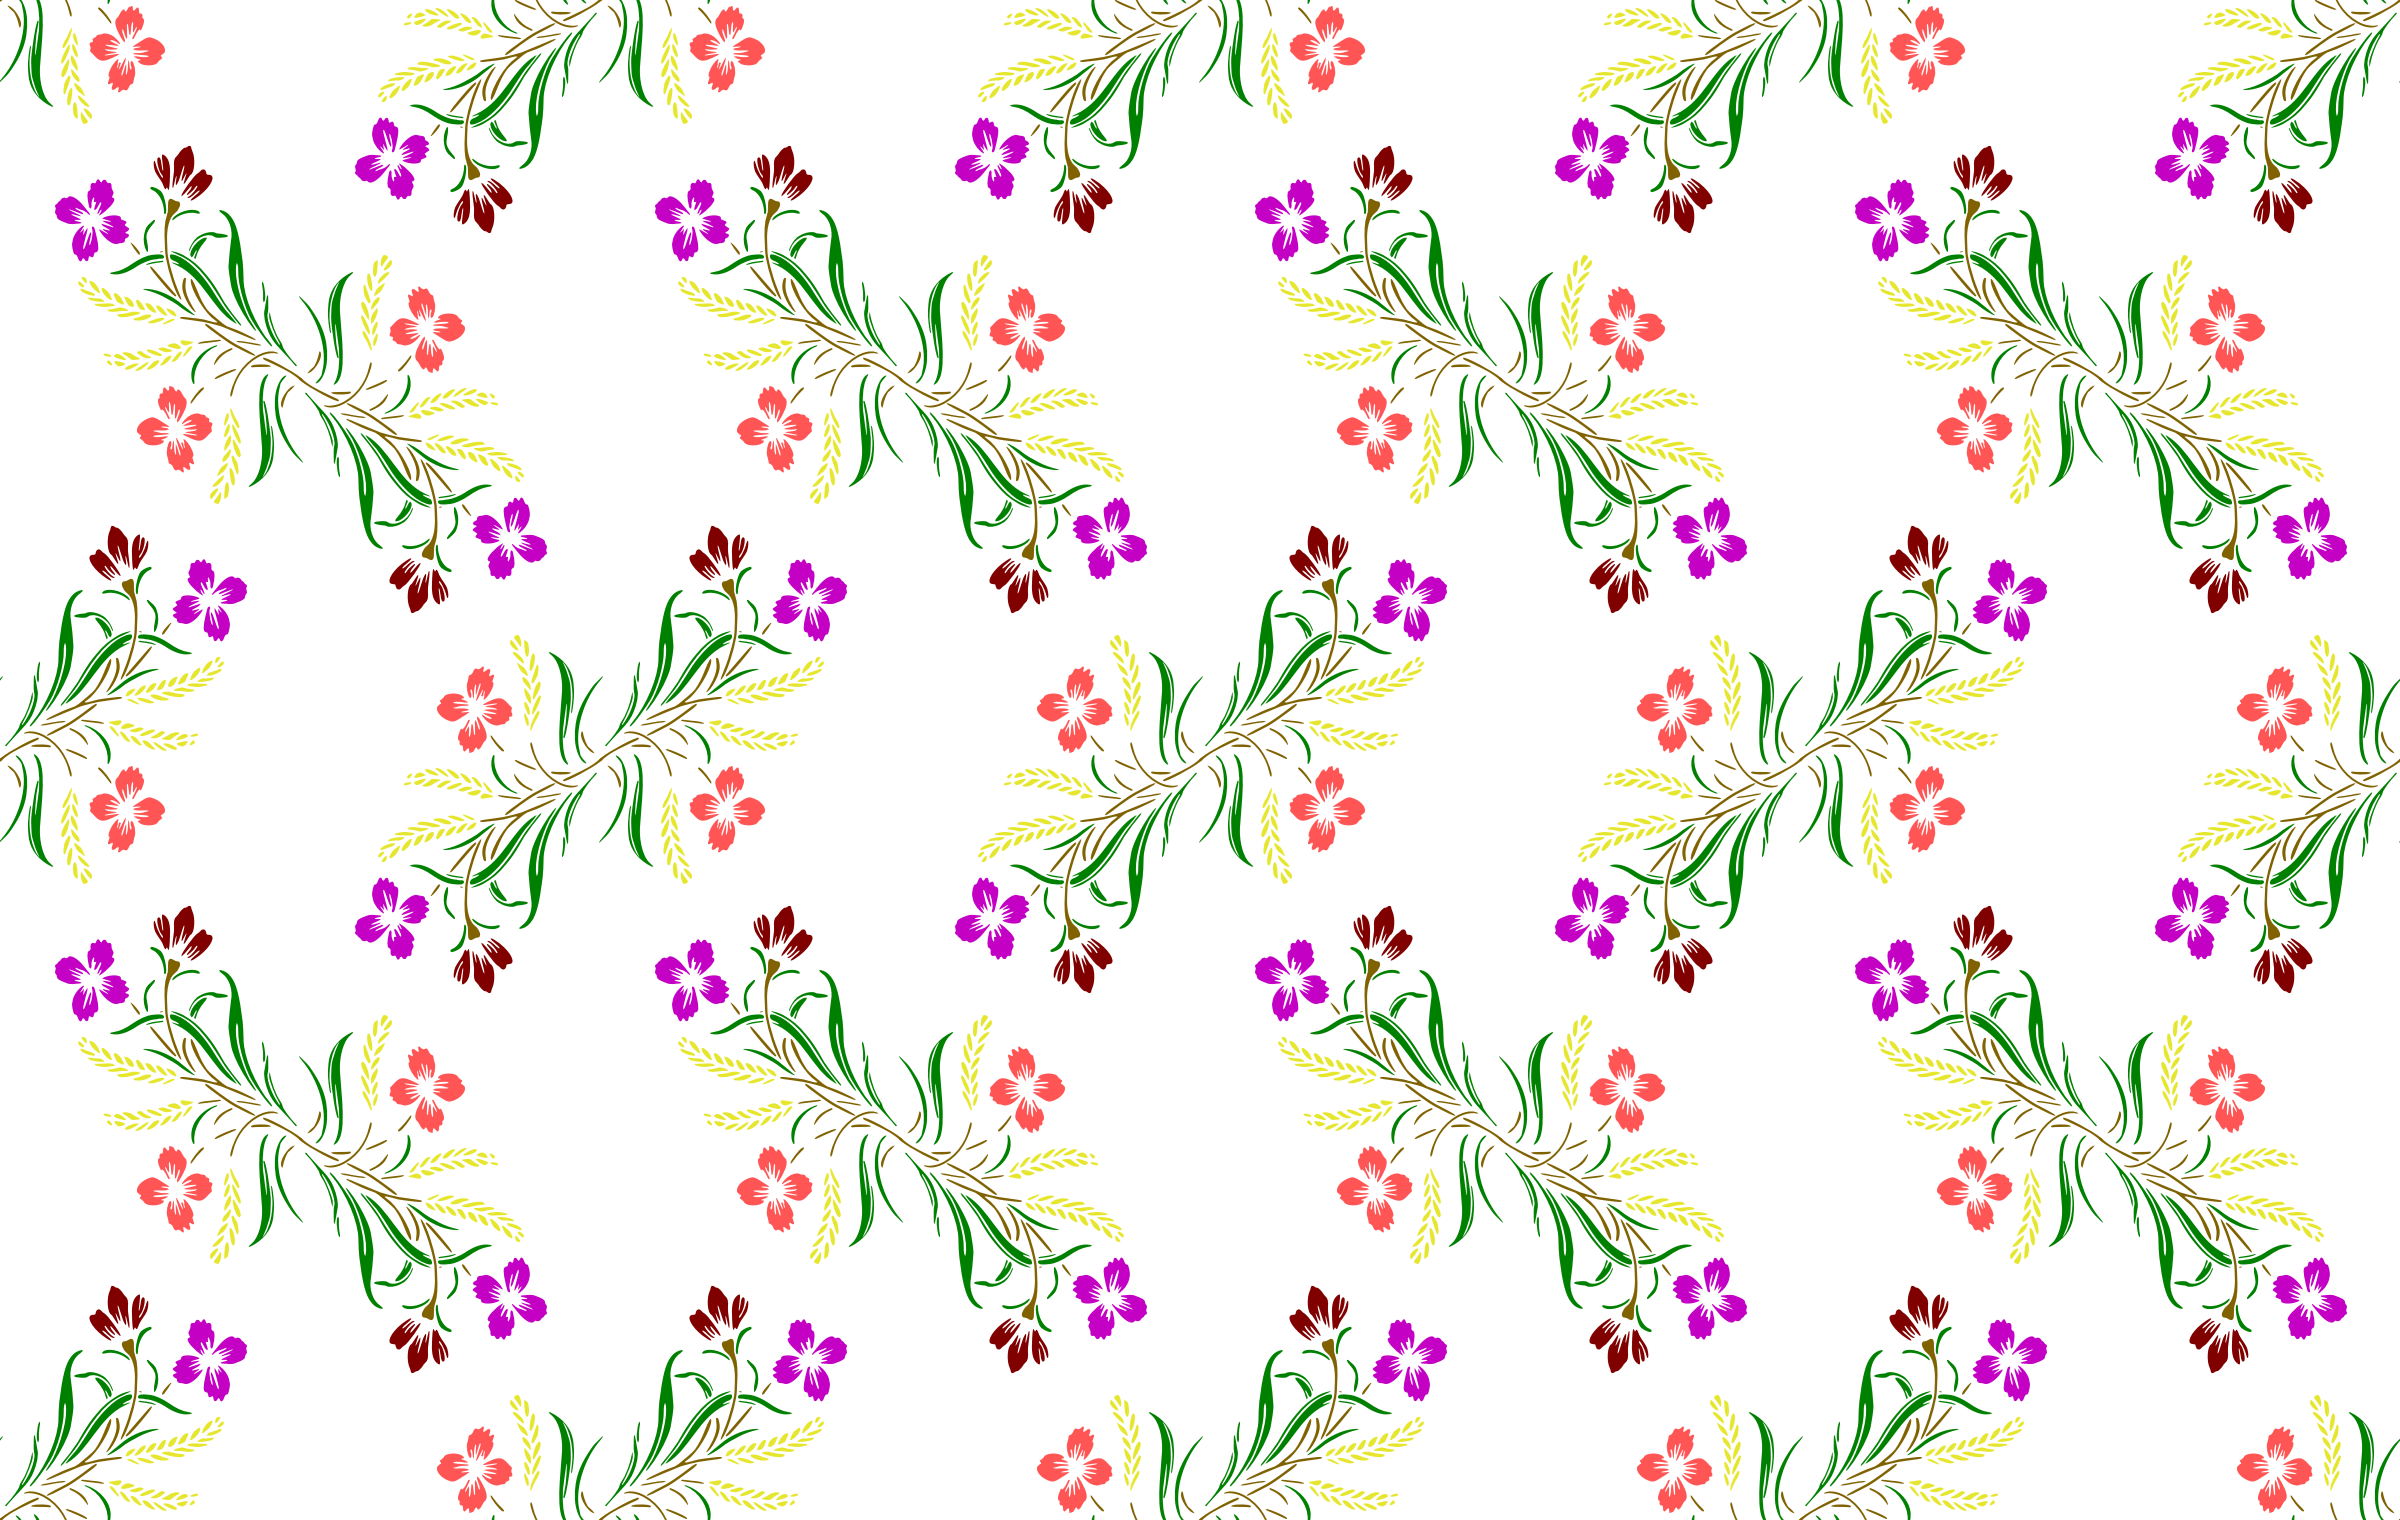 Floral background 16 (colour) by Firkin